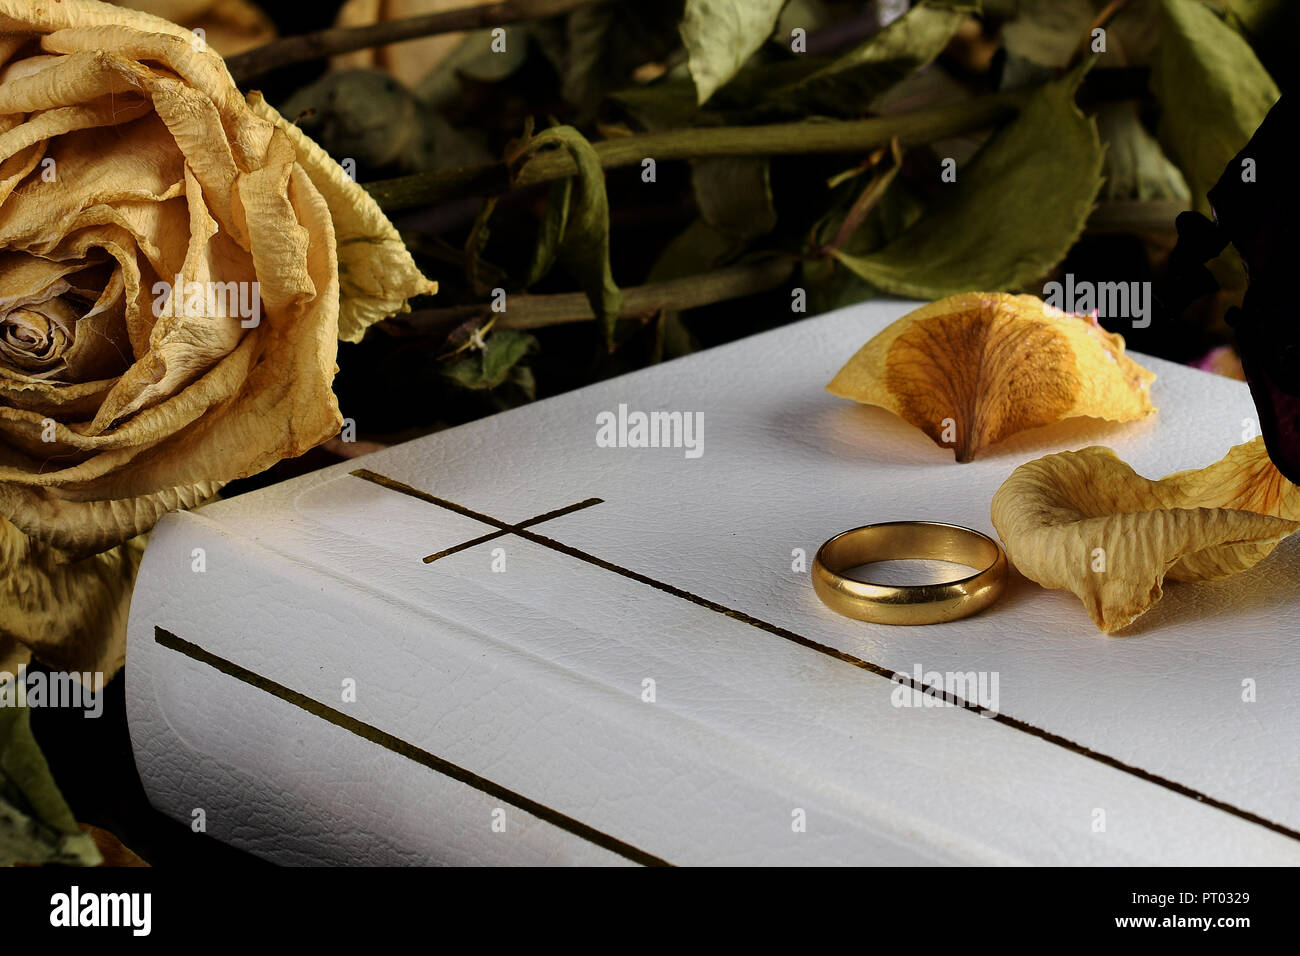 White Holy Bible, one wedding ring and dry roses. Beautiful but touching conceptual image for death, marriage, divorce and wedding vows. - Stock Image